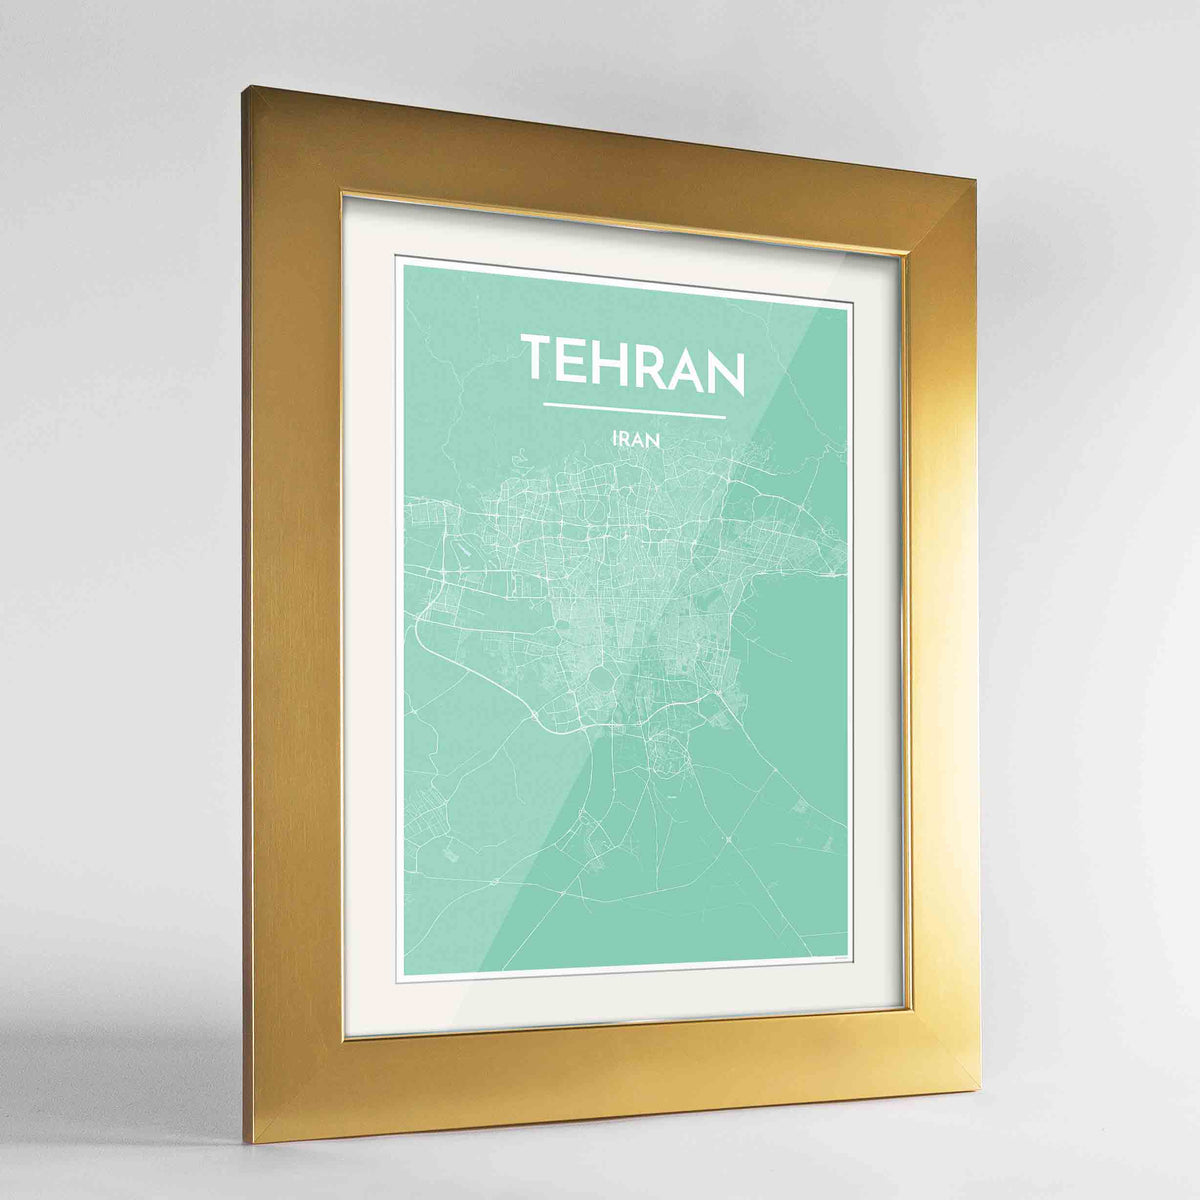 "Framed Tehran Map Art Print 24x36"" Gold frame Point Two Design Group"